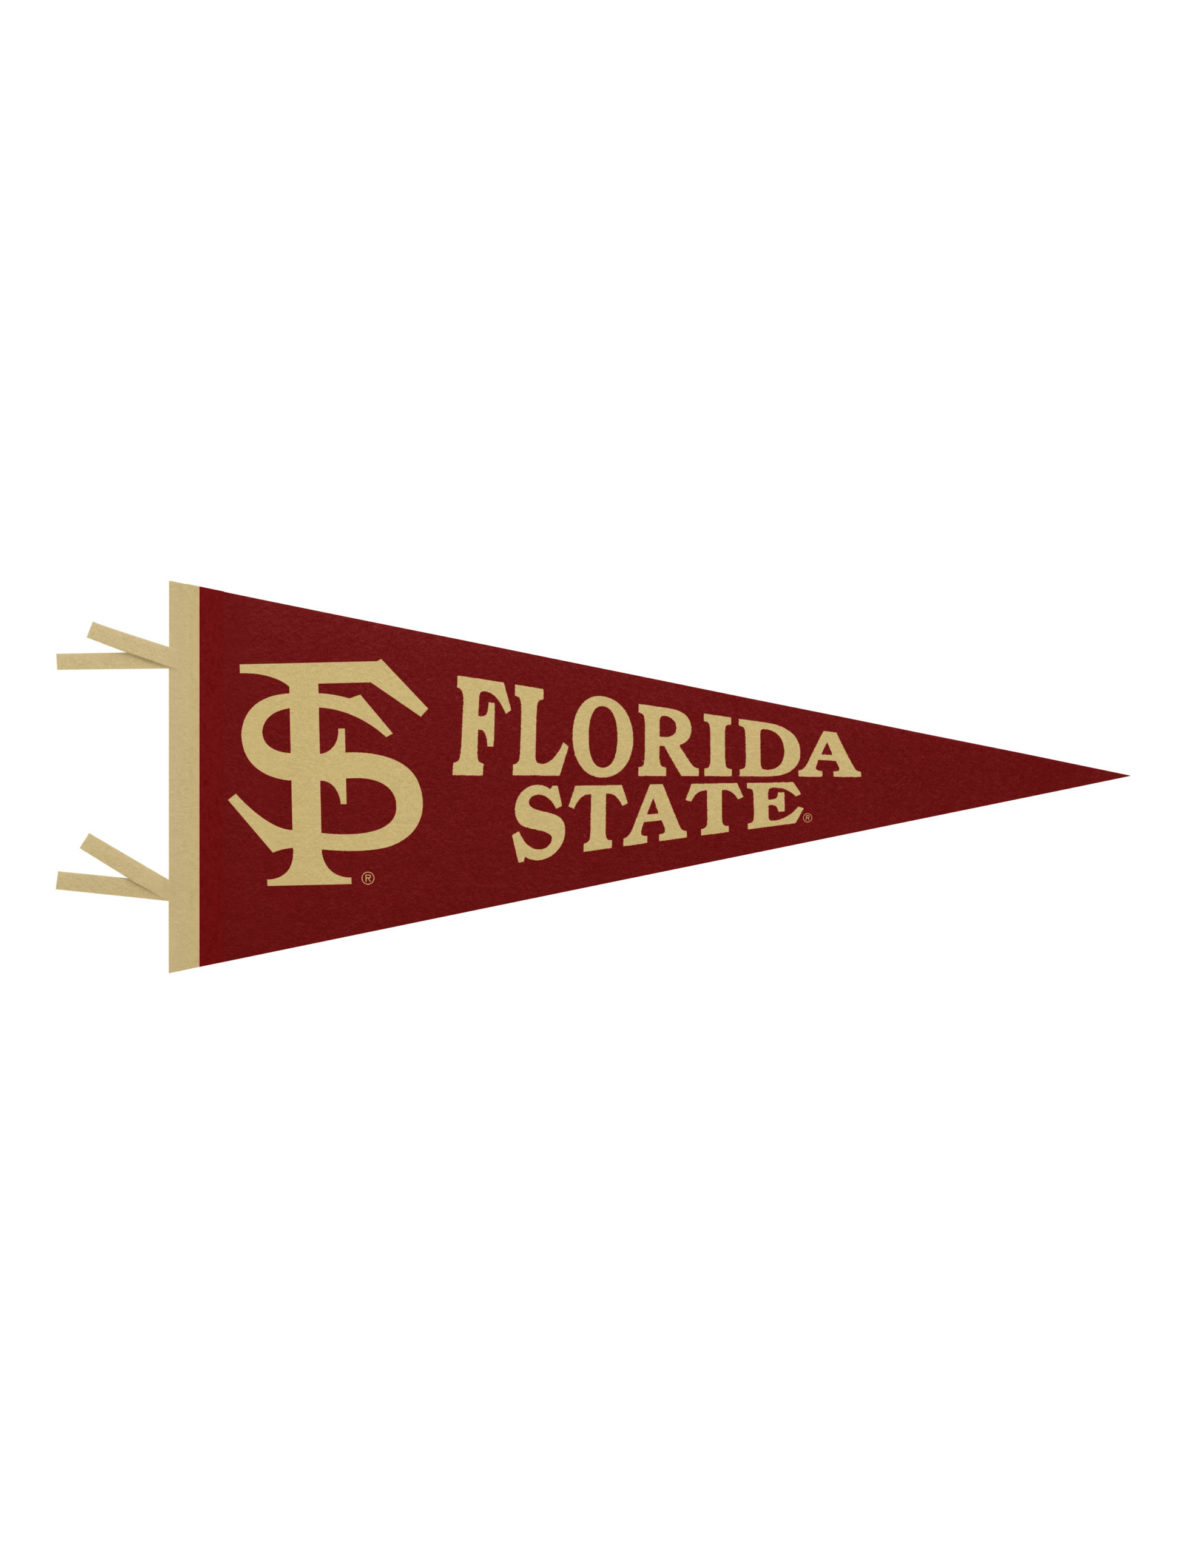 FSU Florida State felt pennant Barefoot Campus Outfitter